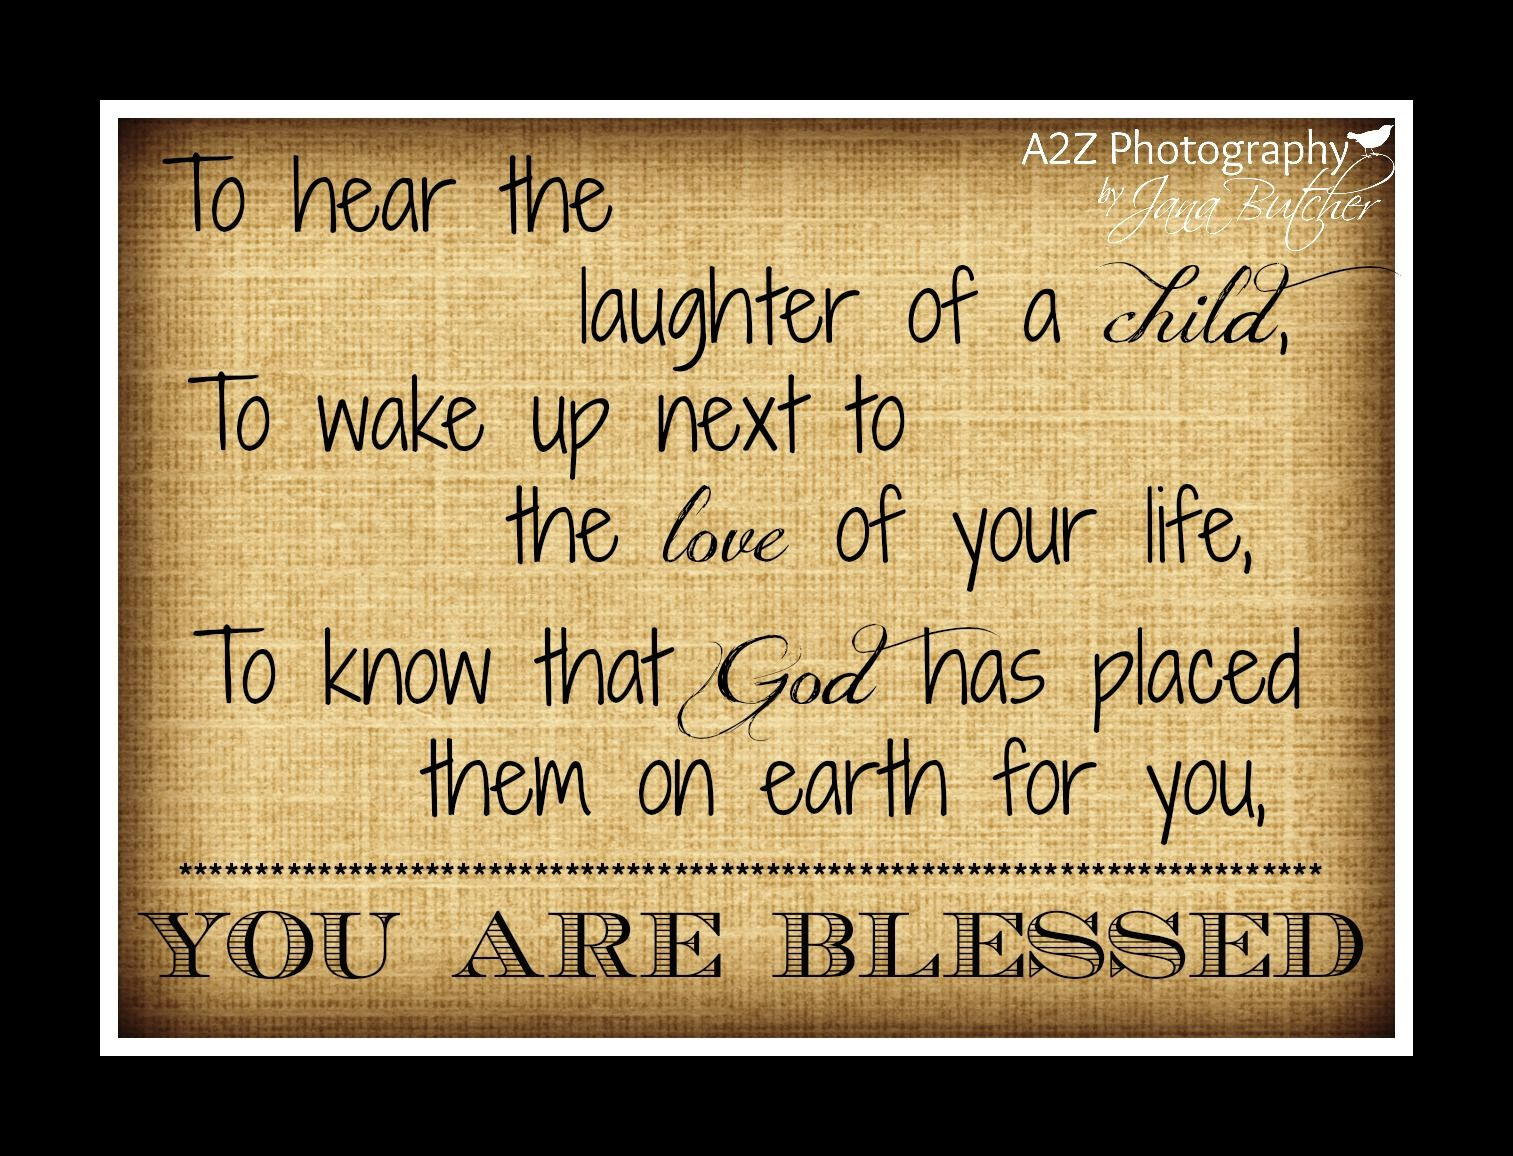 You are blessed 8x10 Fine Art Wall Art Home Decor Photo Print ...